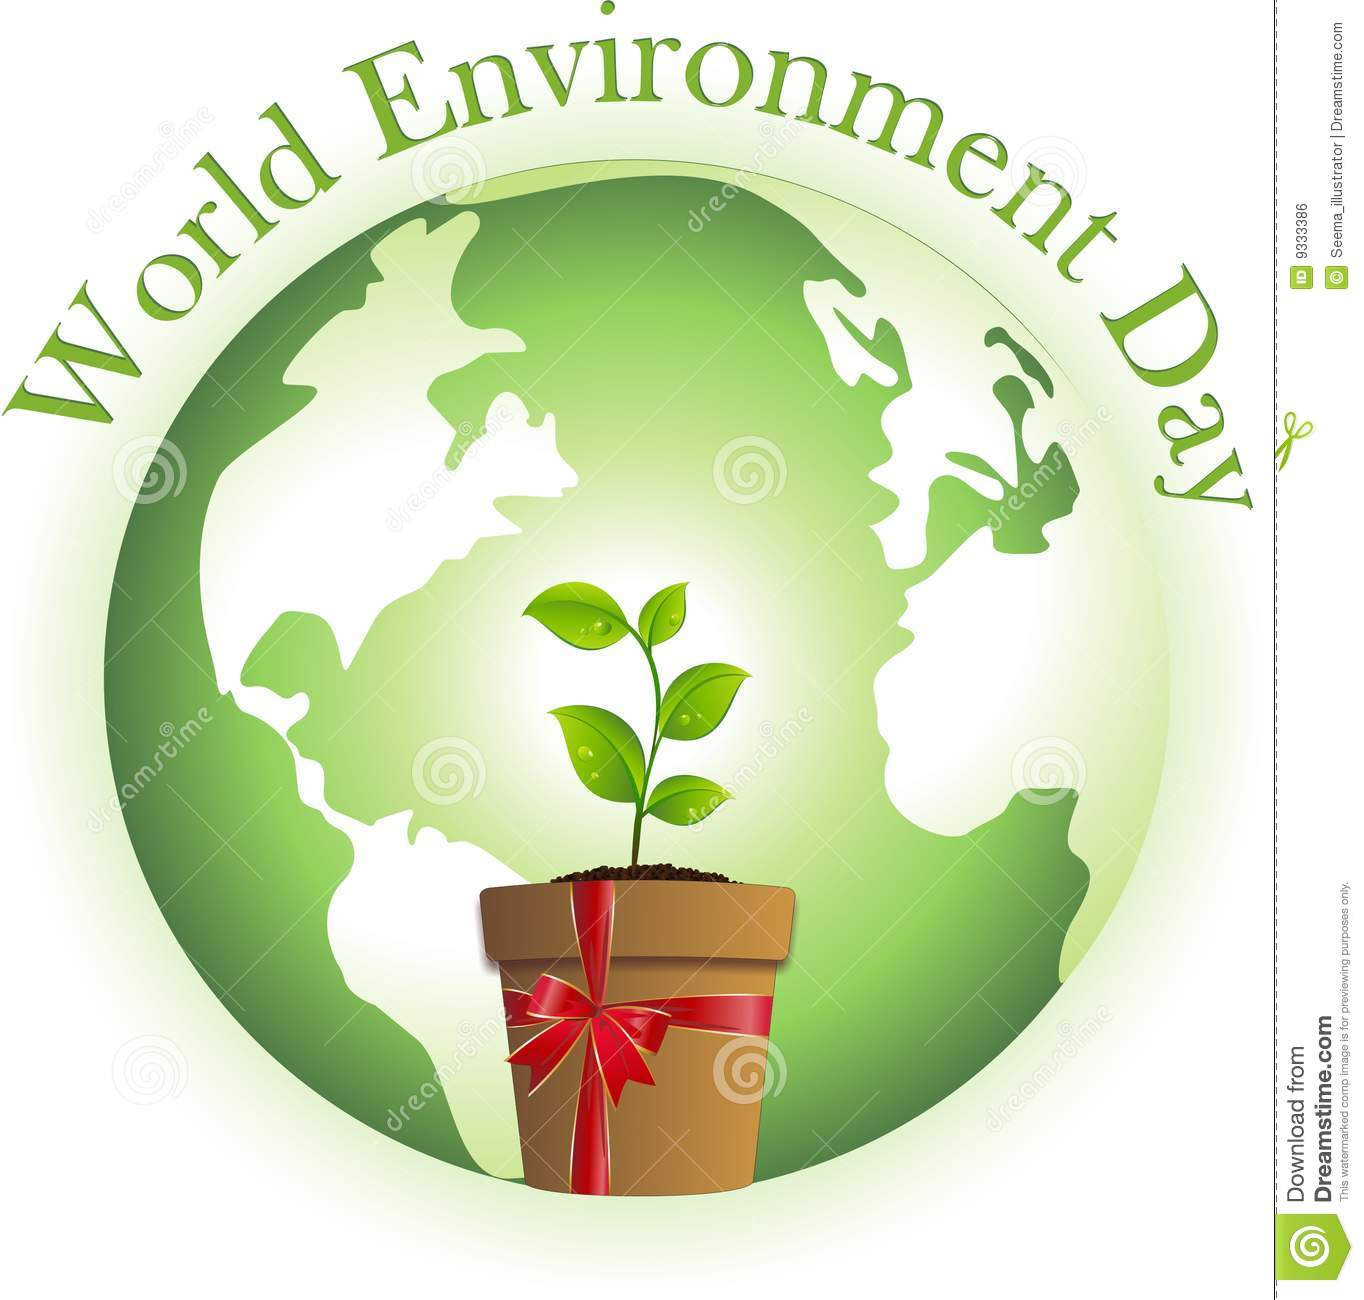 world environment day stock vector image of conservation  world environment day